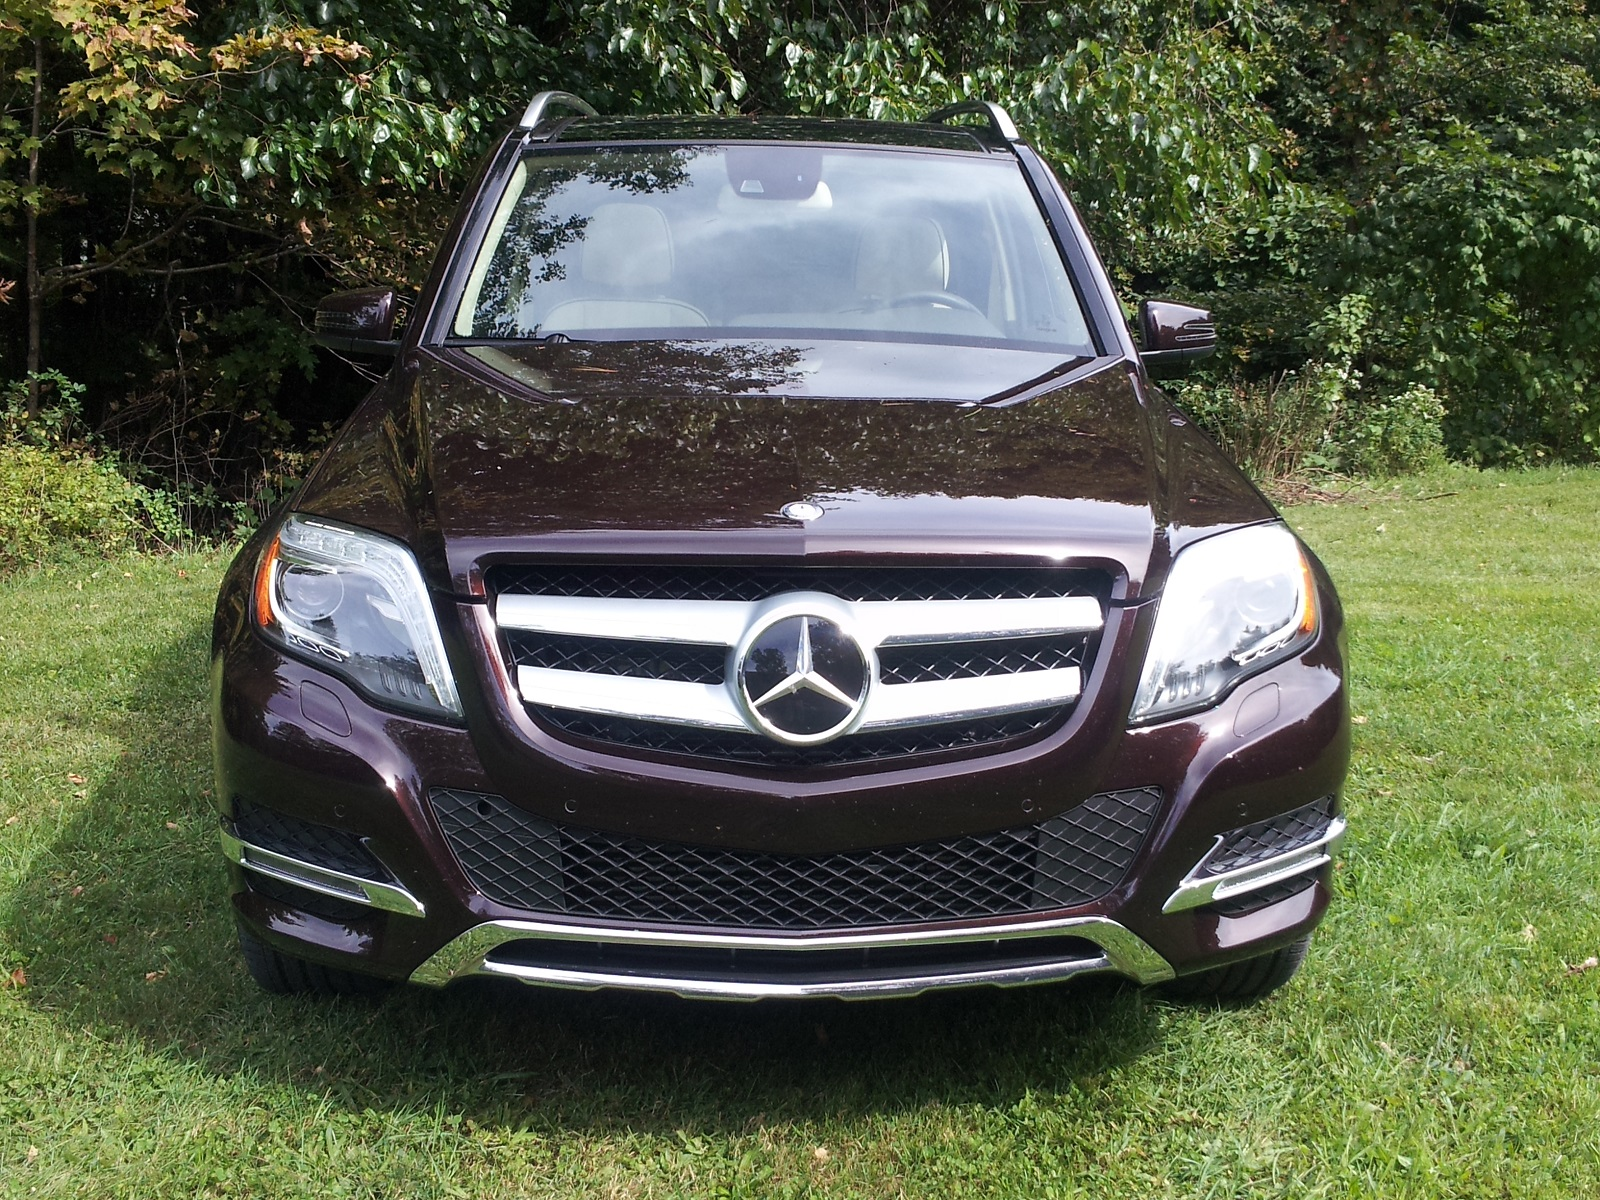 Mercedes-Benz GLK 250 BlueTEC Diesel: Luxury Crossover ...